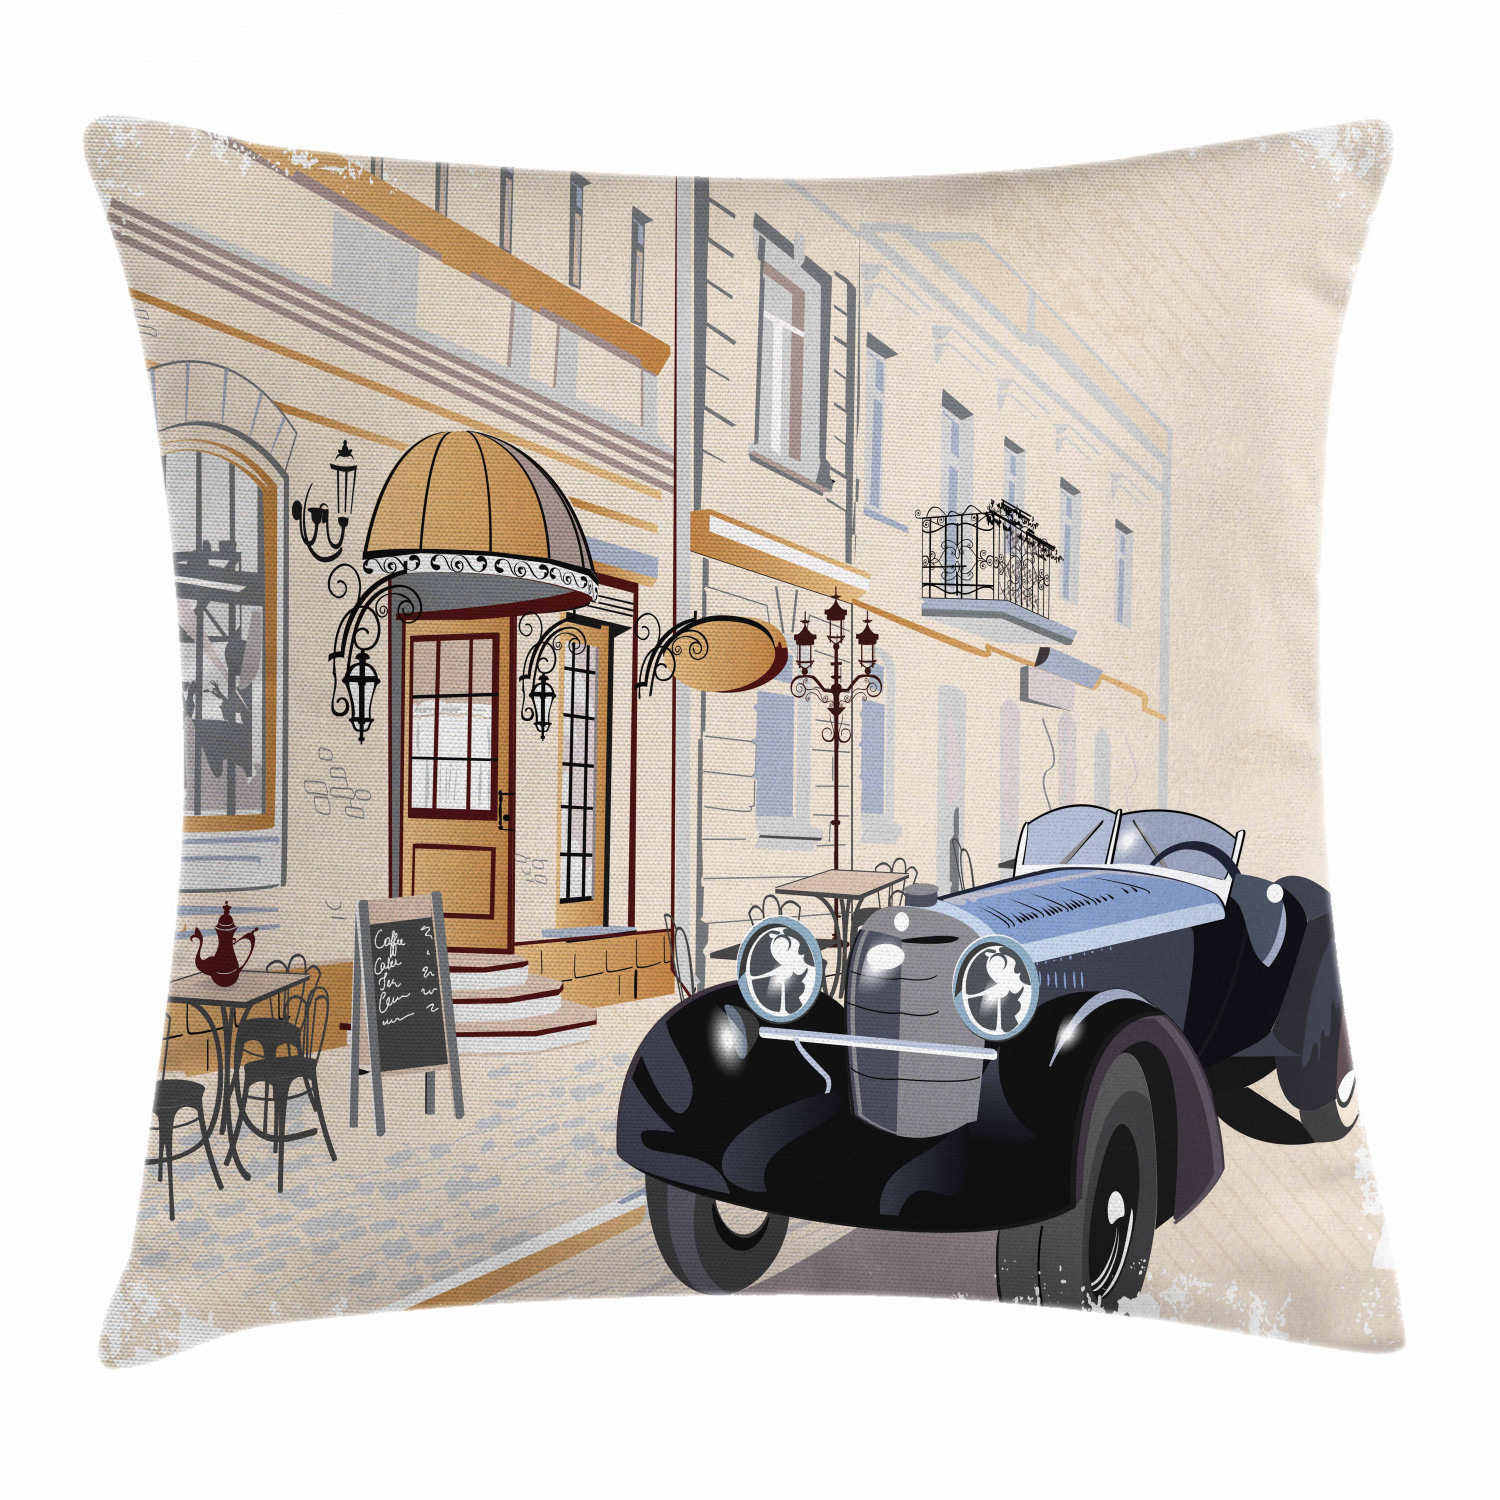 Nostalgic Design Throw Pillow Cases Cushion Covers Home